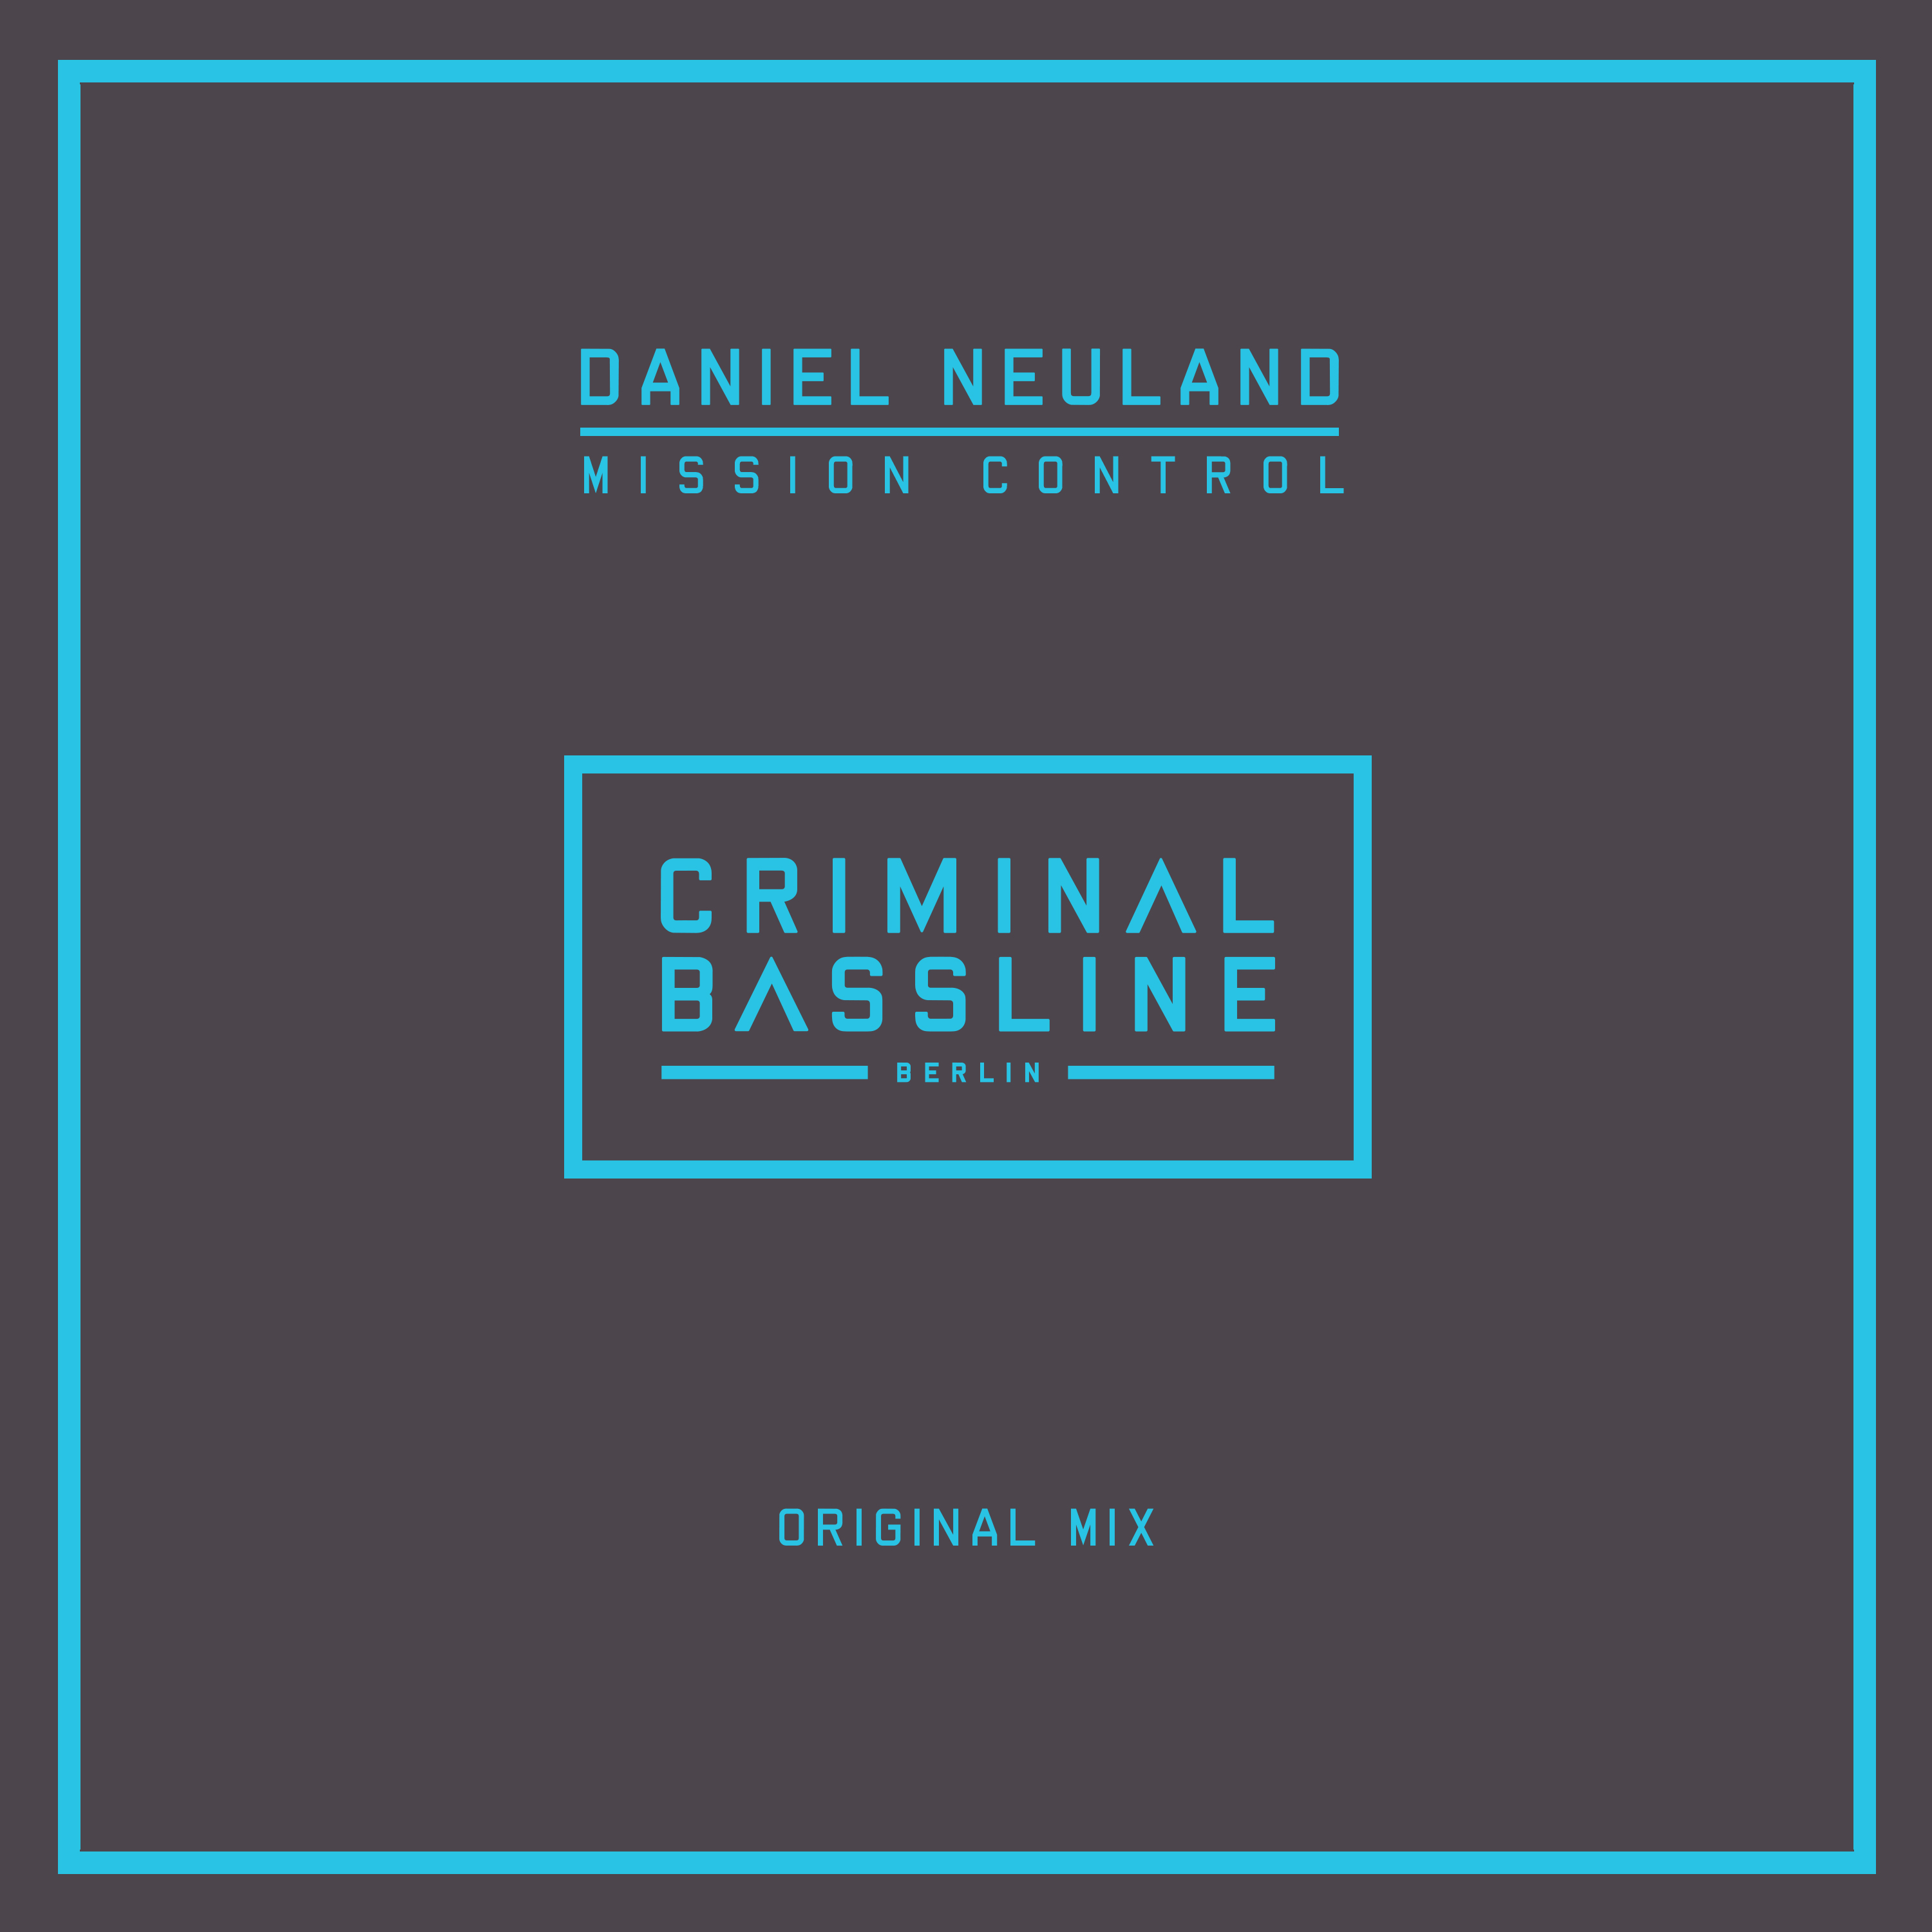 WELCOME & DOWNLOAD: Daniel Neuland – Mission Control (Original Mix)